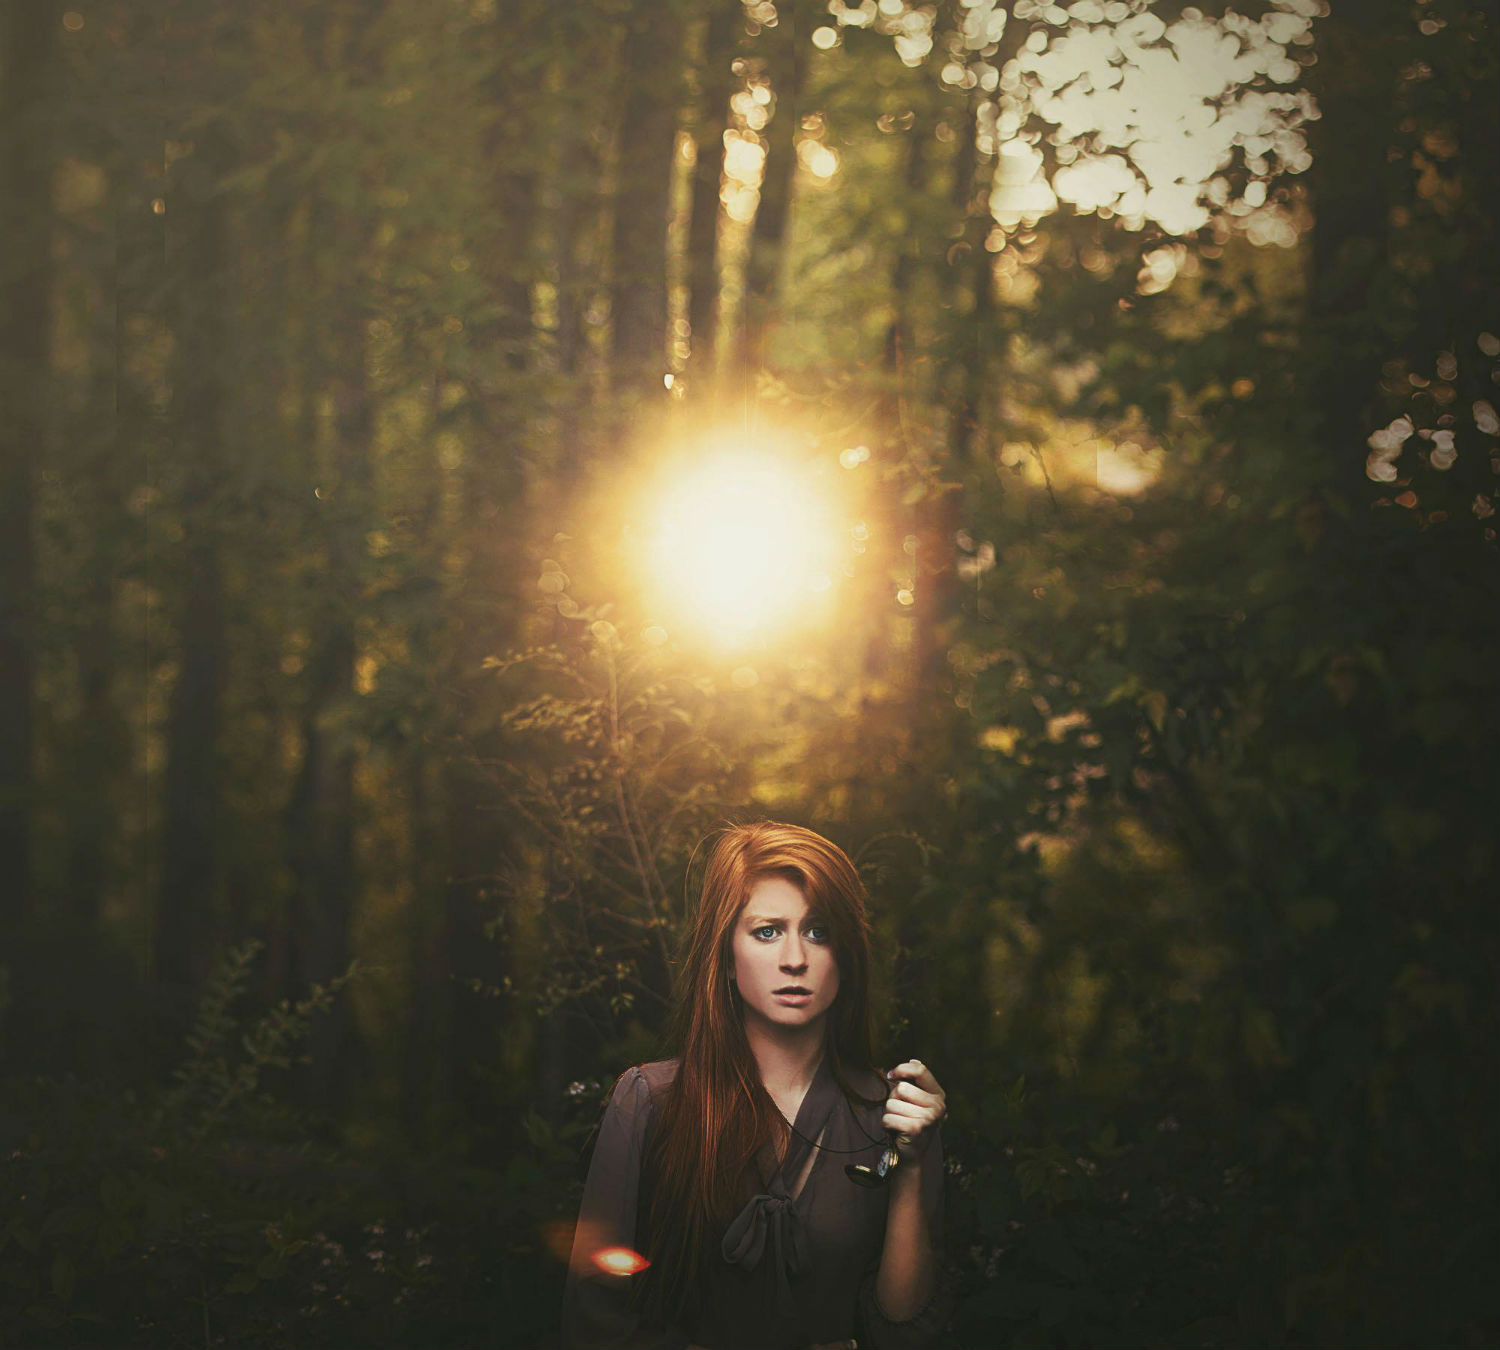 shelby robinson photography surreal colour magic sunlight forest